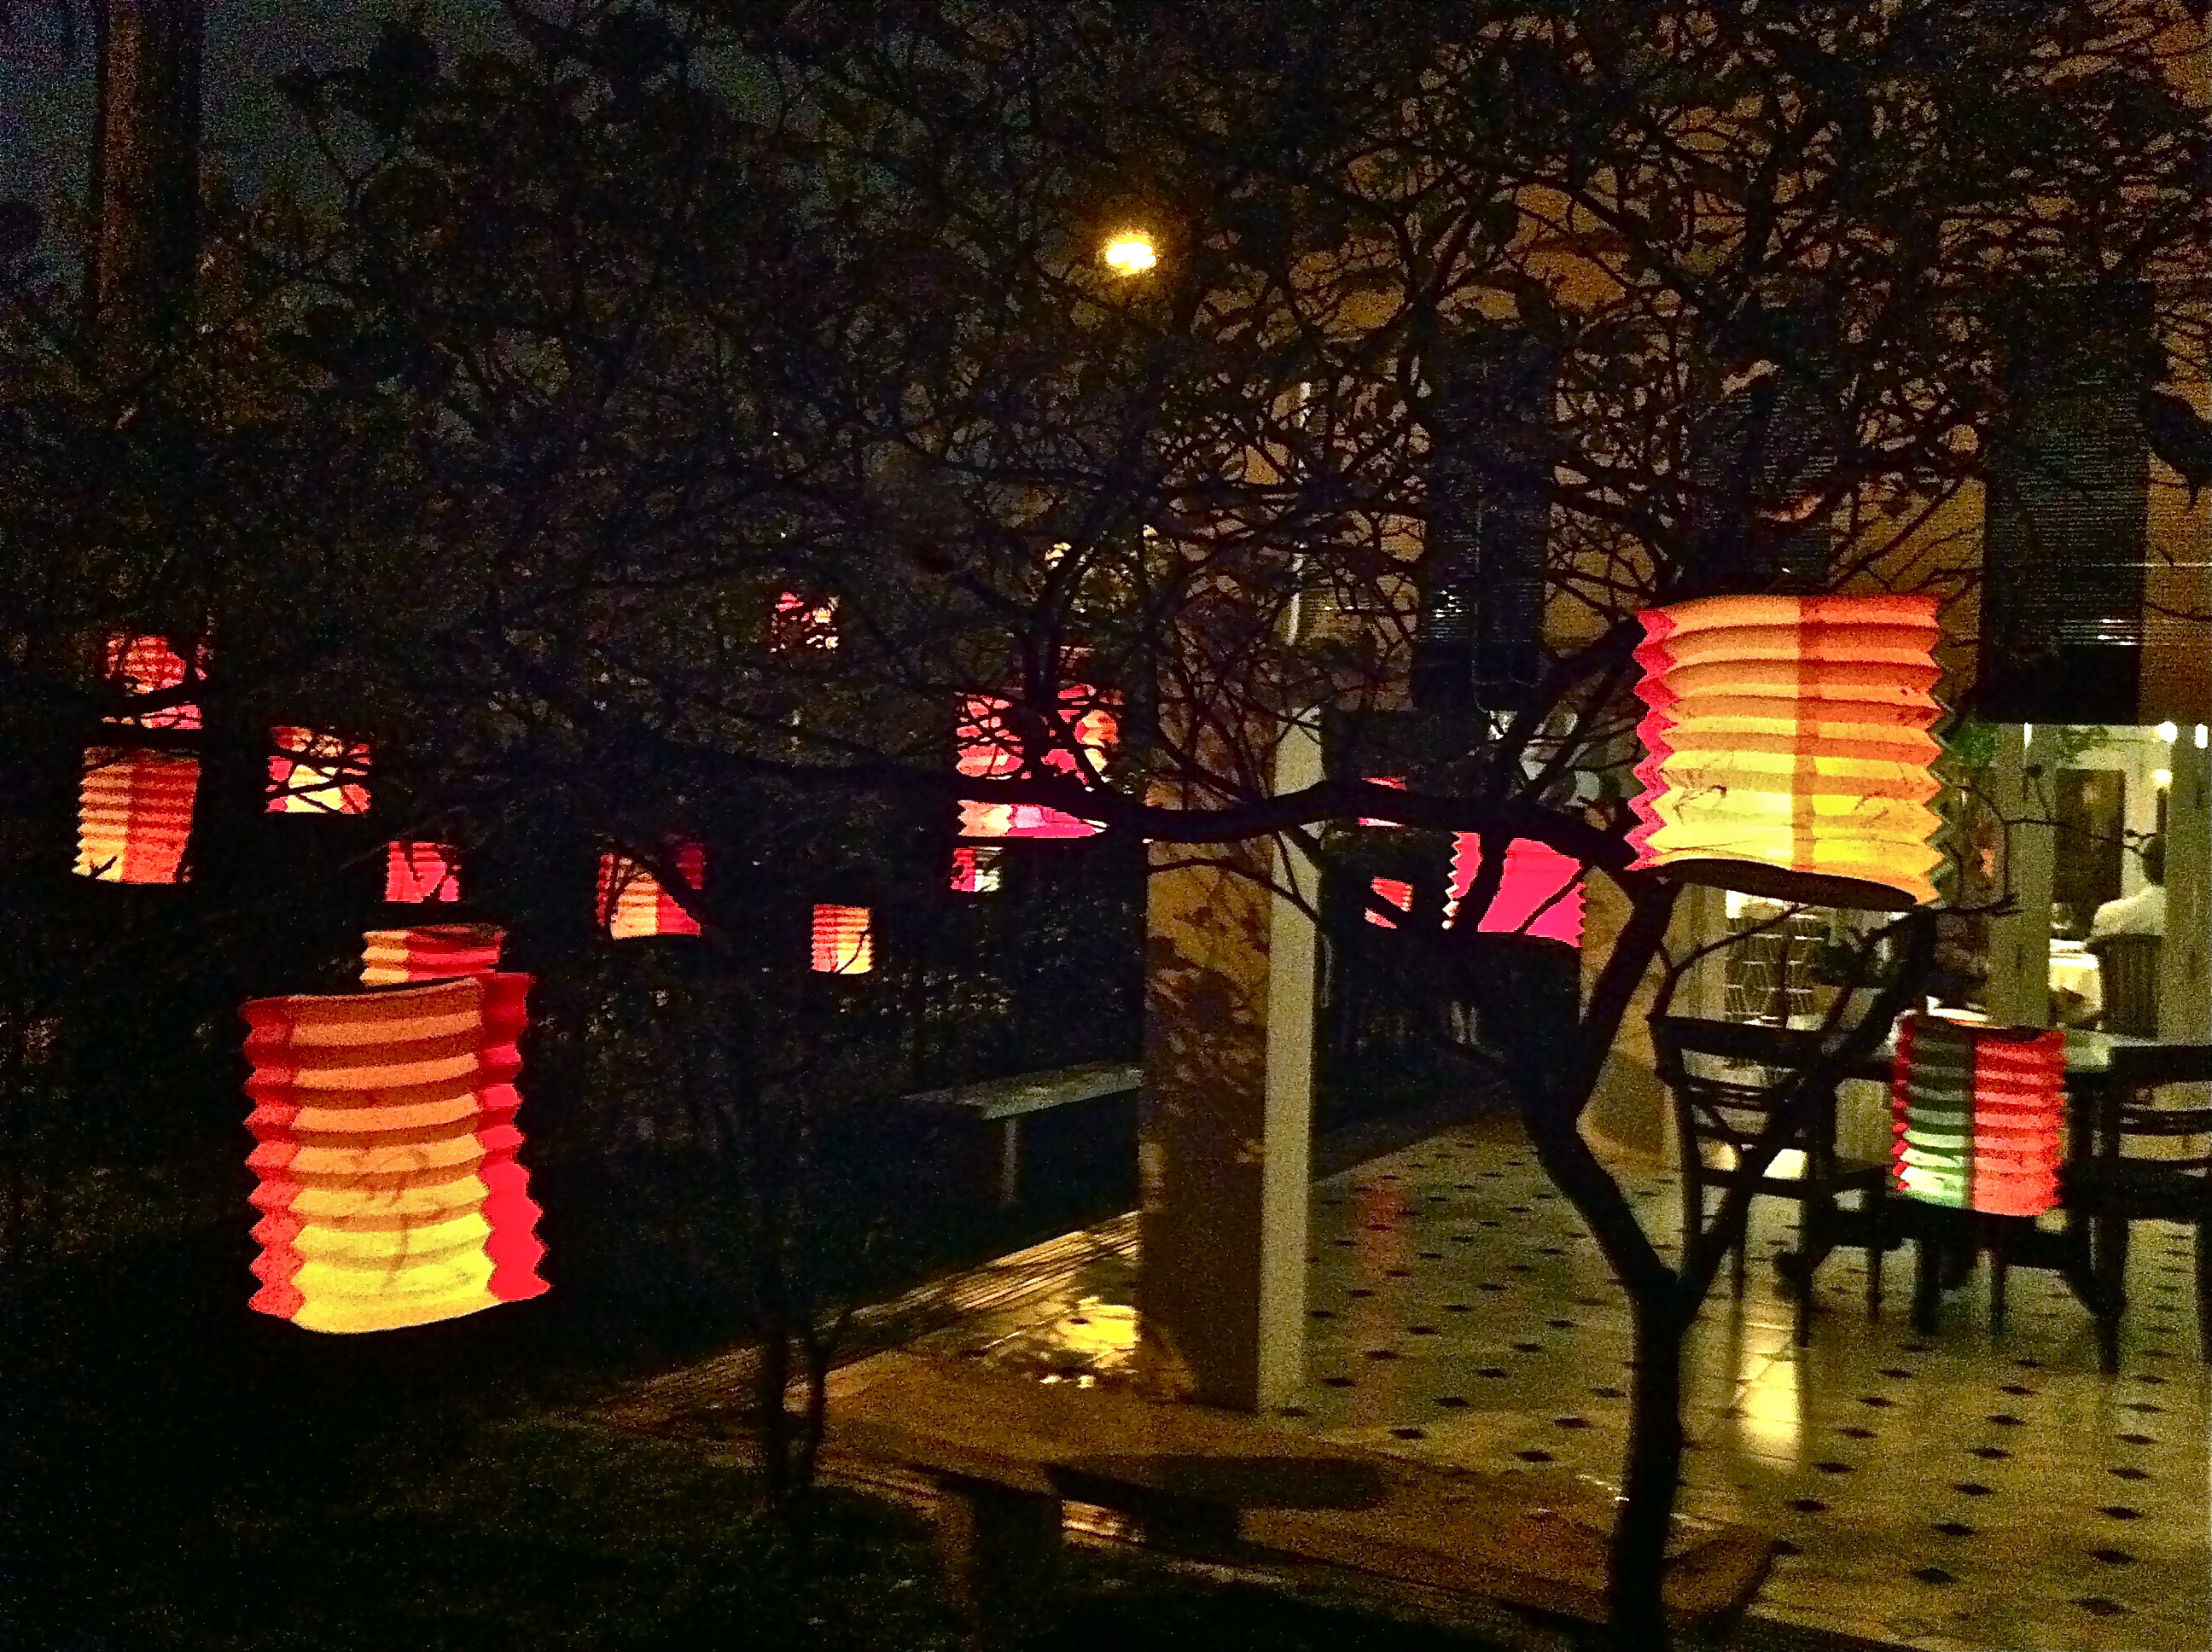 the glow of the mid autumn lanterns after the rain